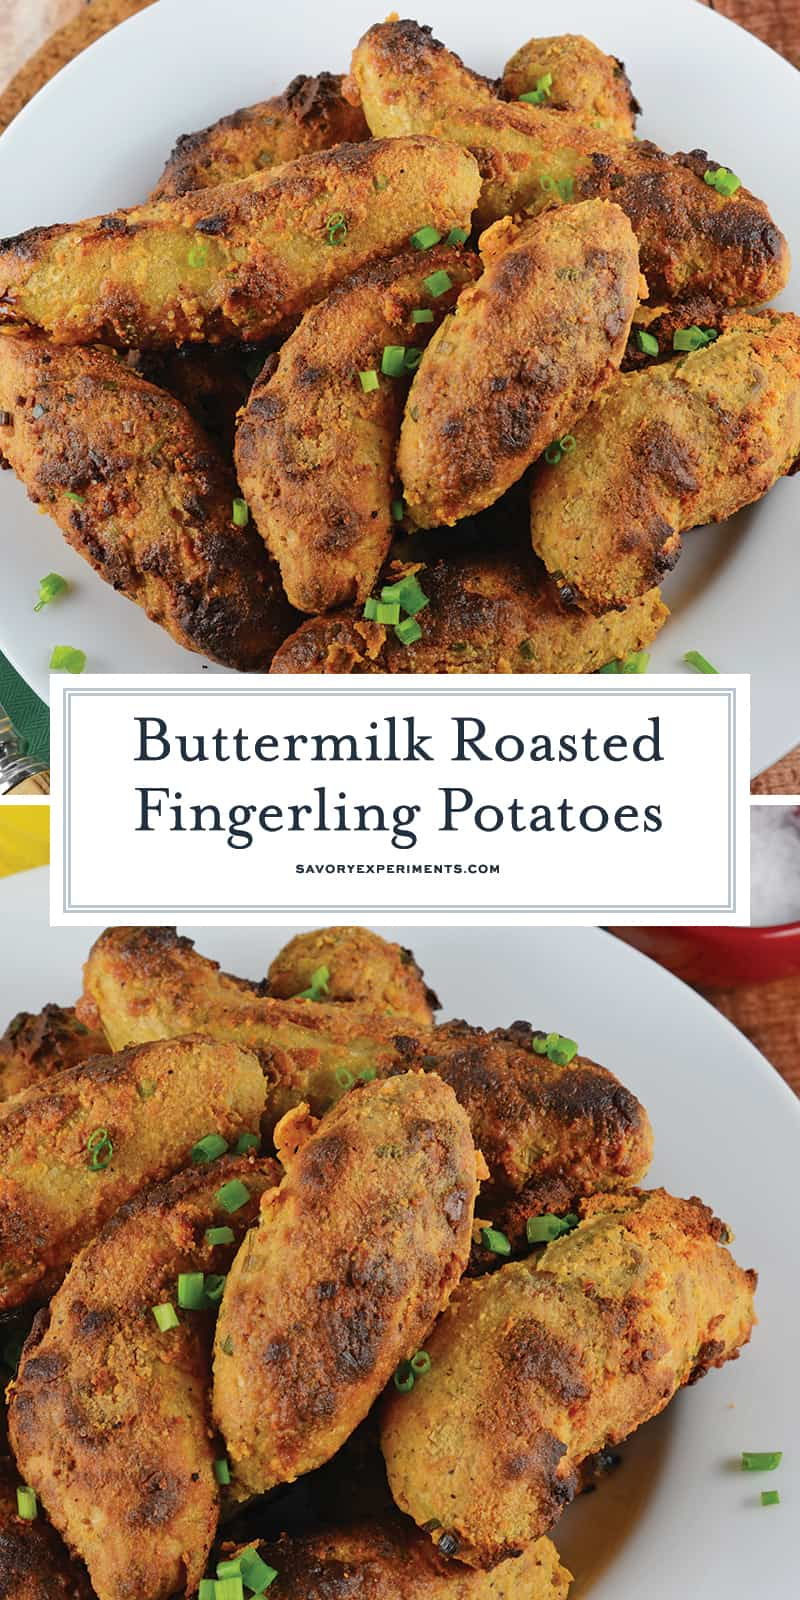 Buttermilk Roasted Fingerling Potatoes are the perfect side dish! This fingerling potato recipe is zesty and crispy covered in a yummy buttermilk mixture! #roastedfingerlingpotatoes #fingerlingpotatorecipe www.savoryexperiments.com